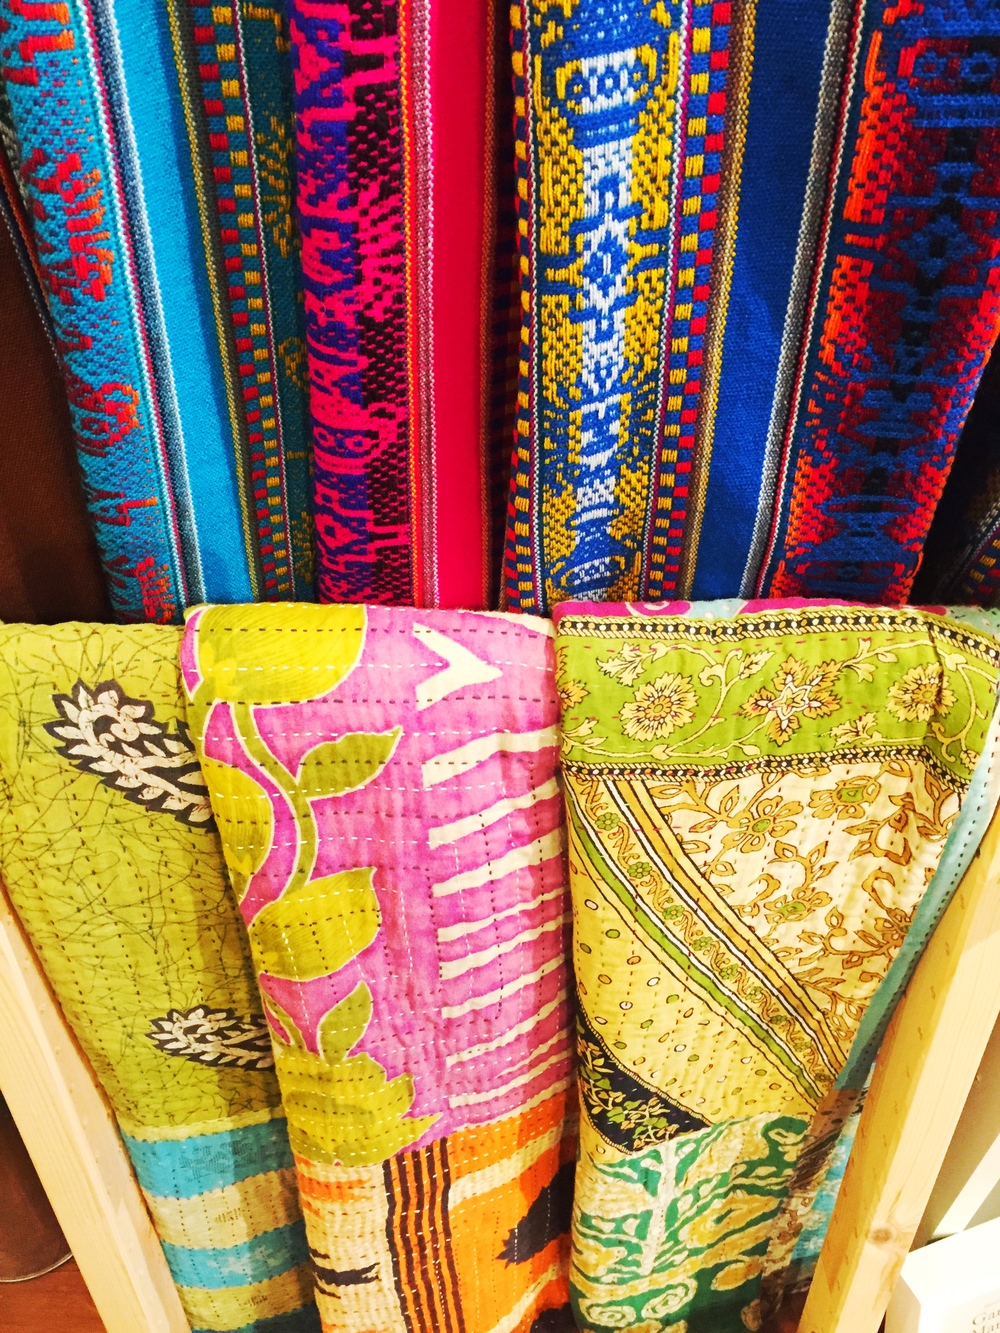 I have my eye on one of these beautiful reversible sari throws.